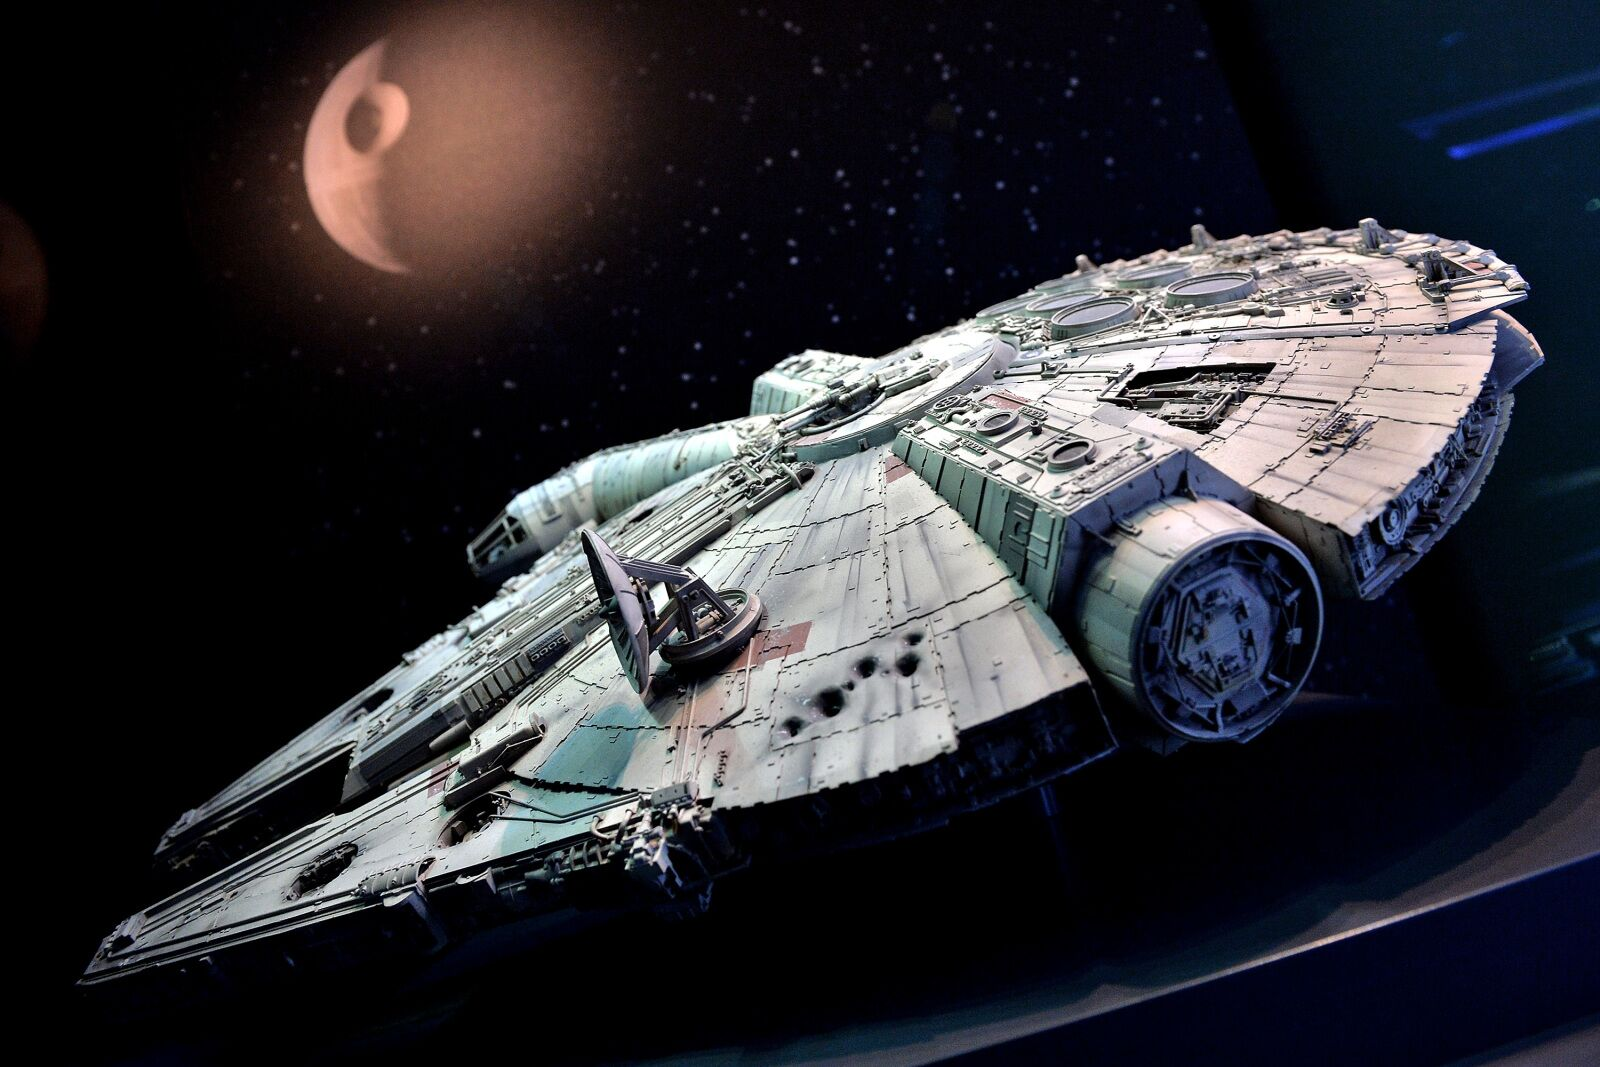 Star Wars: Episode IX rumor: Millennium Falcon expected to get a new look…again